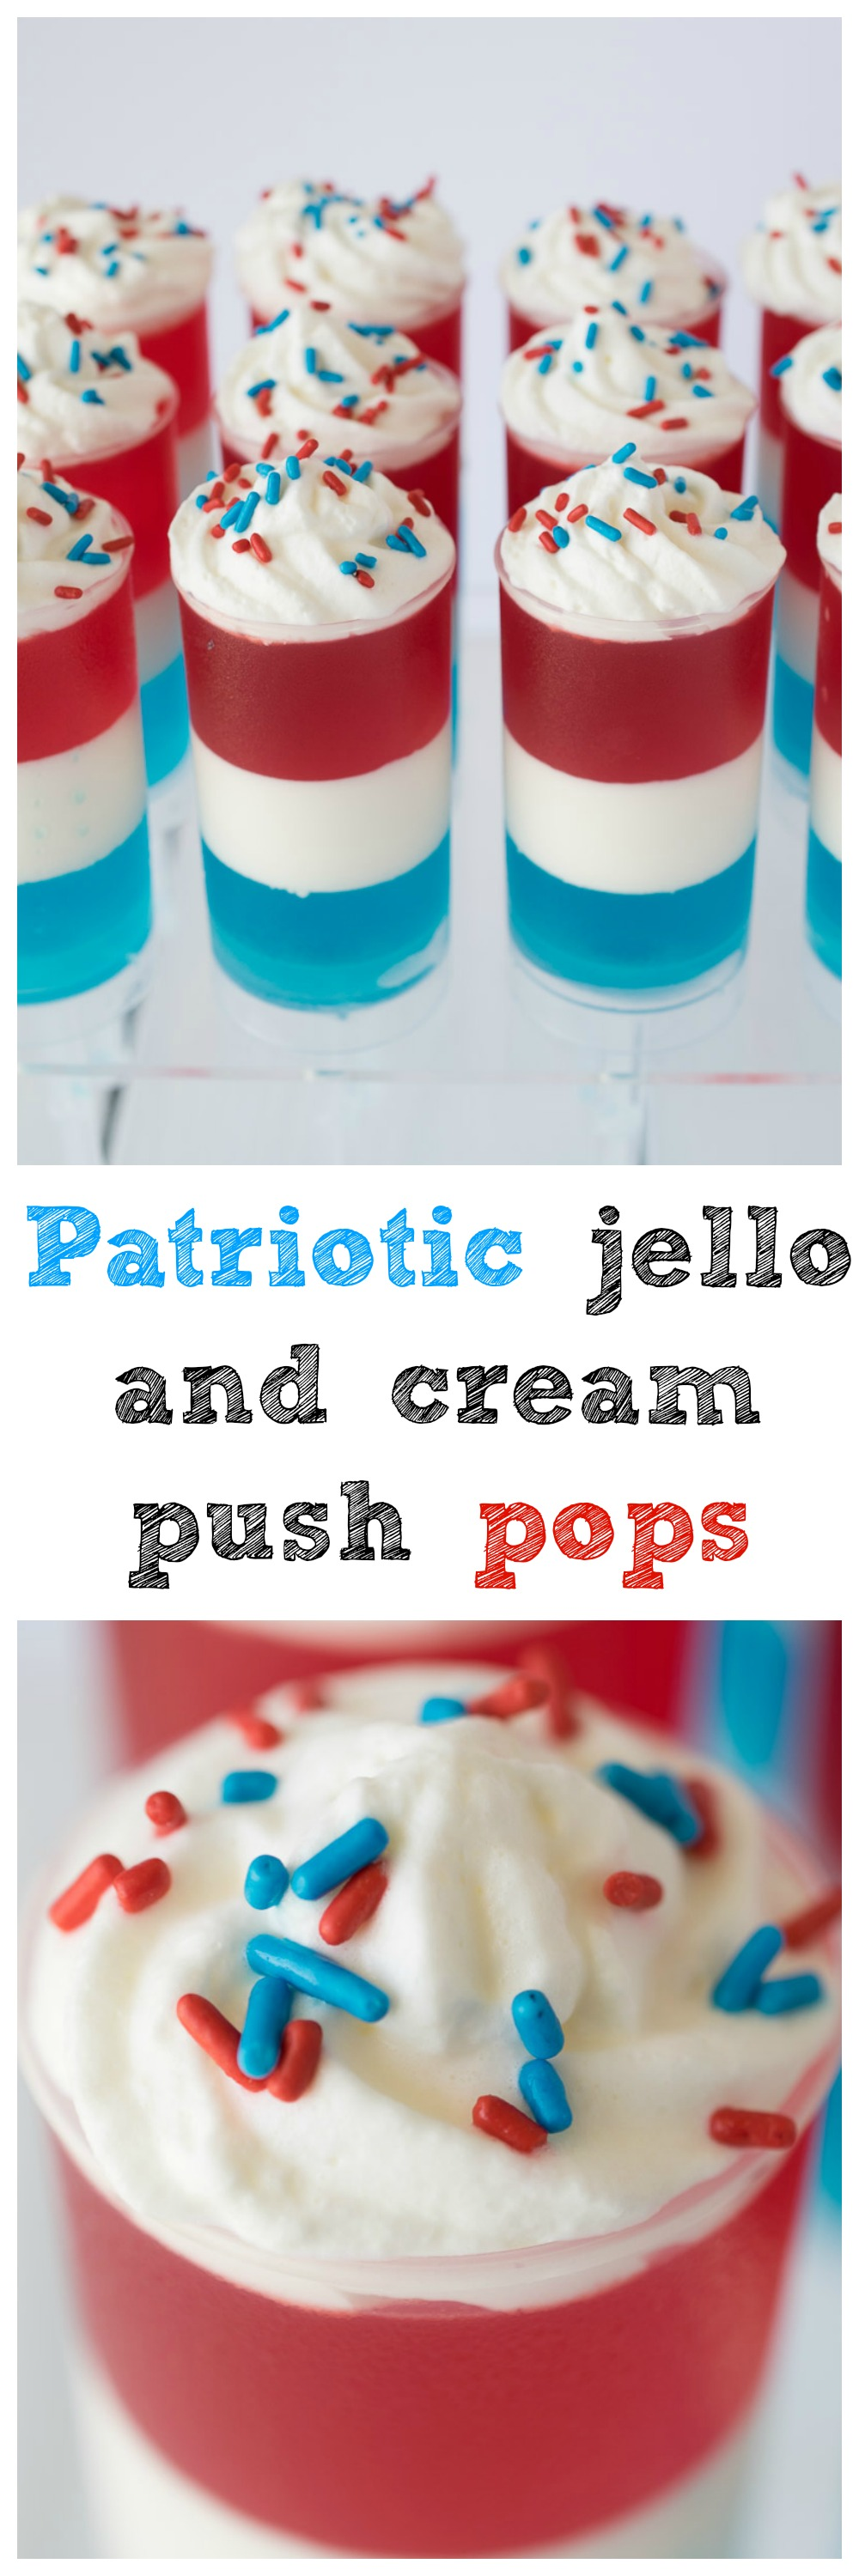 Patriotic jello and cream push pops